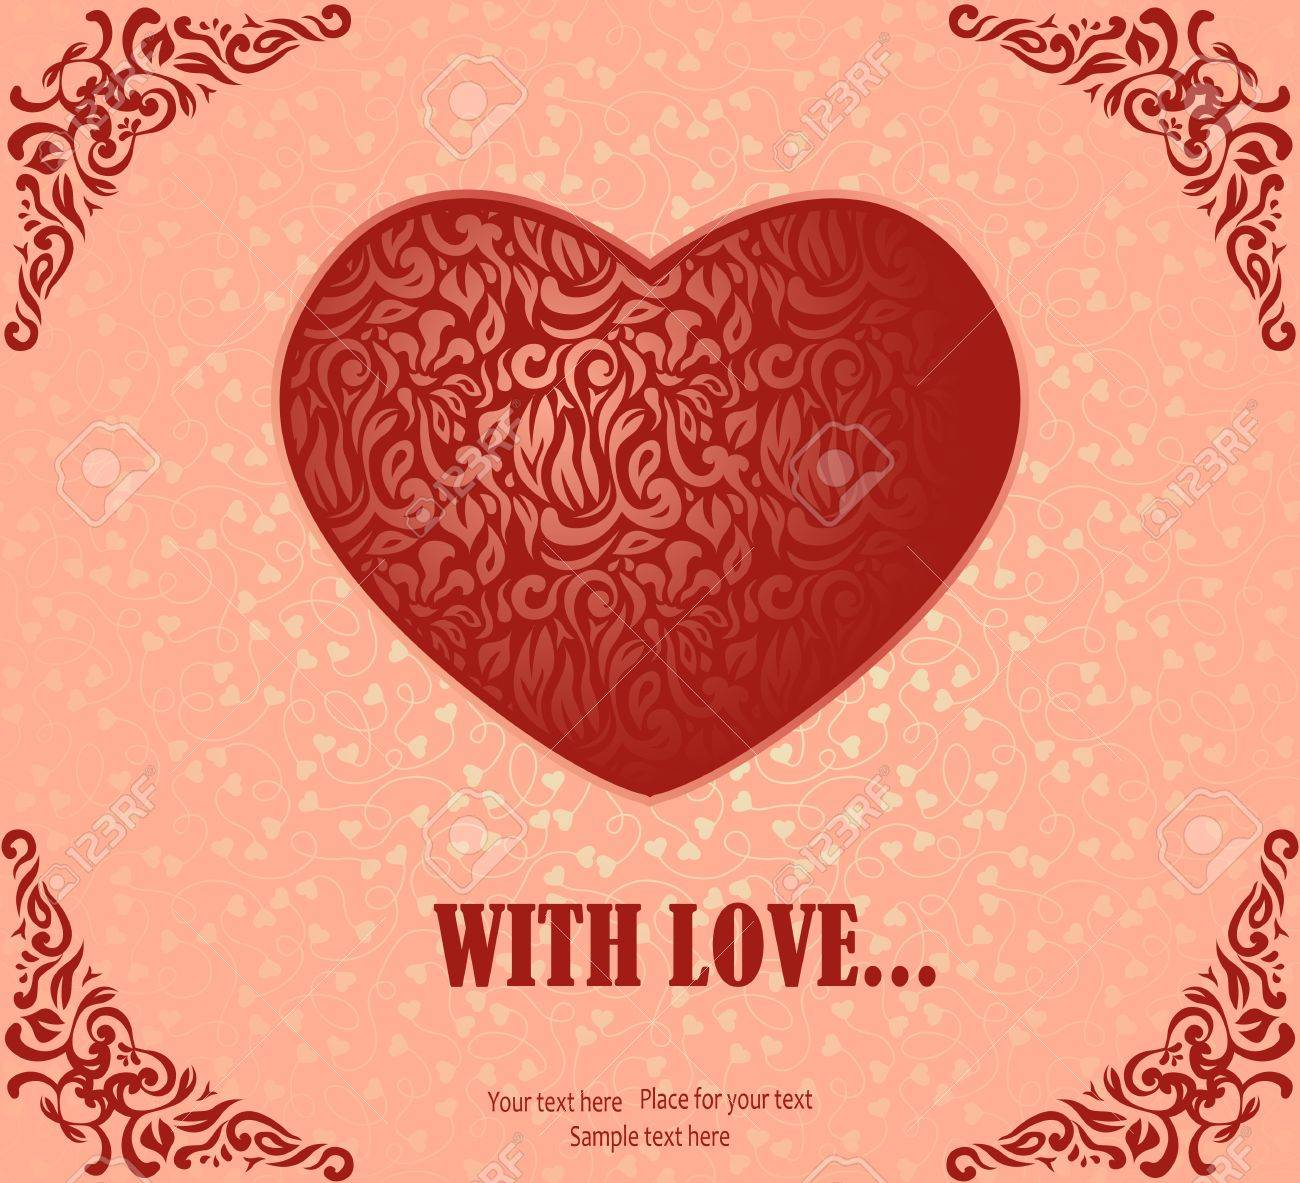 romantic greeting card with vintage heart on the day of lovers